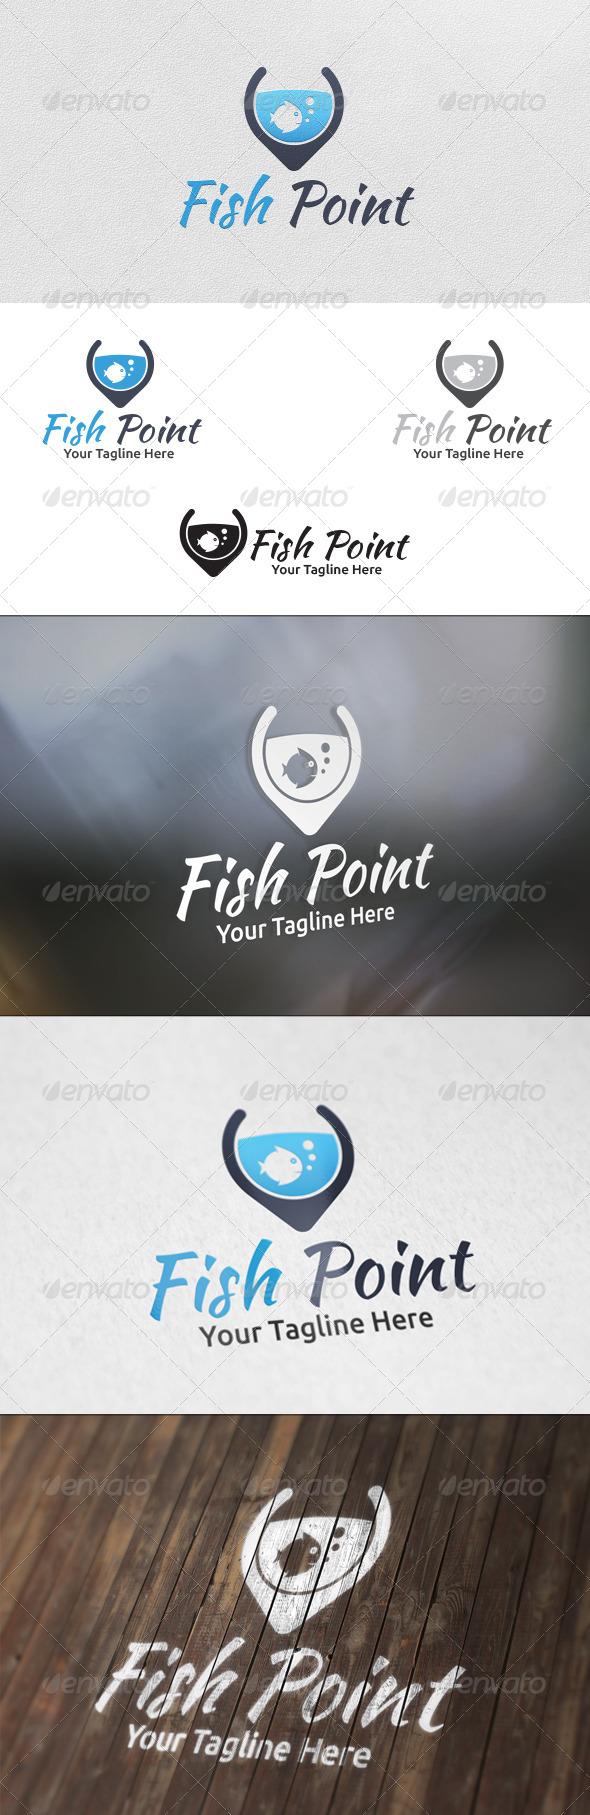 Fish Point Logo Template